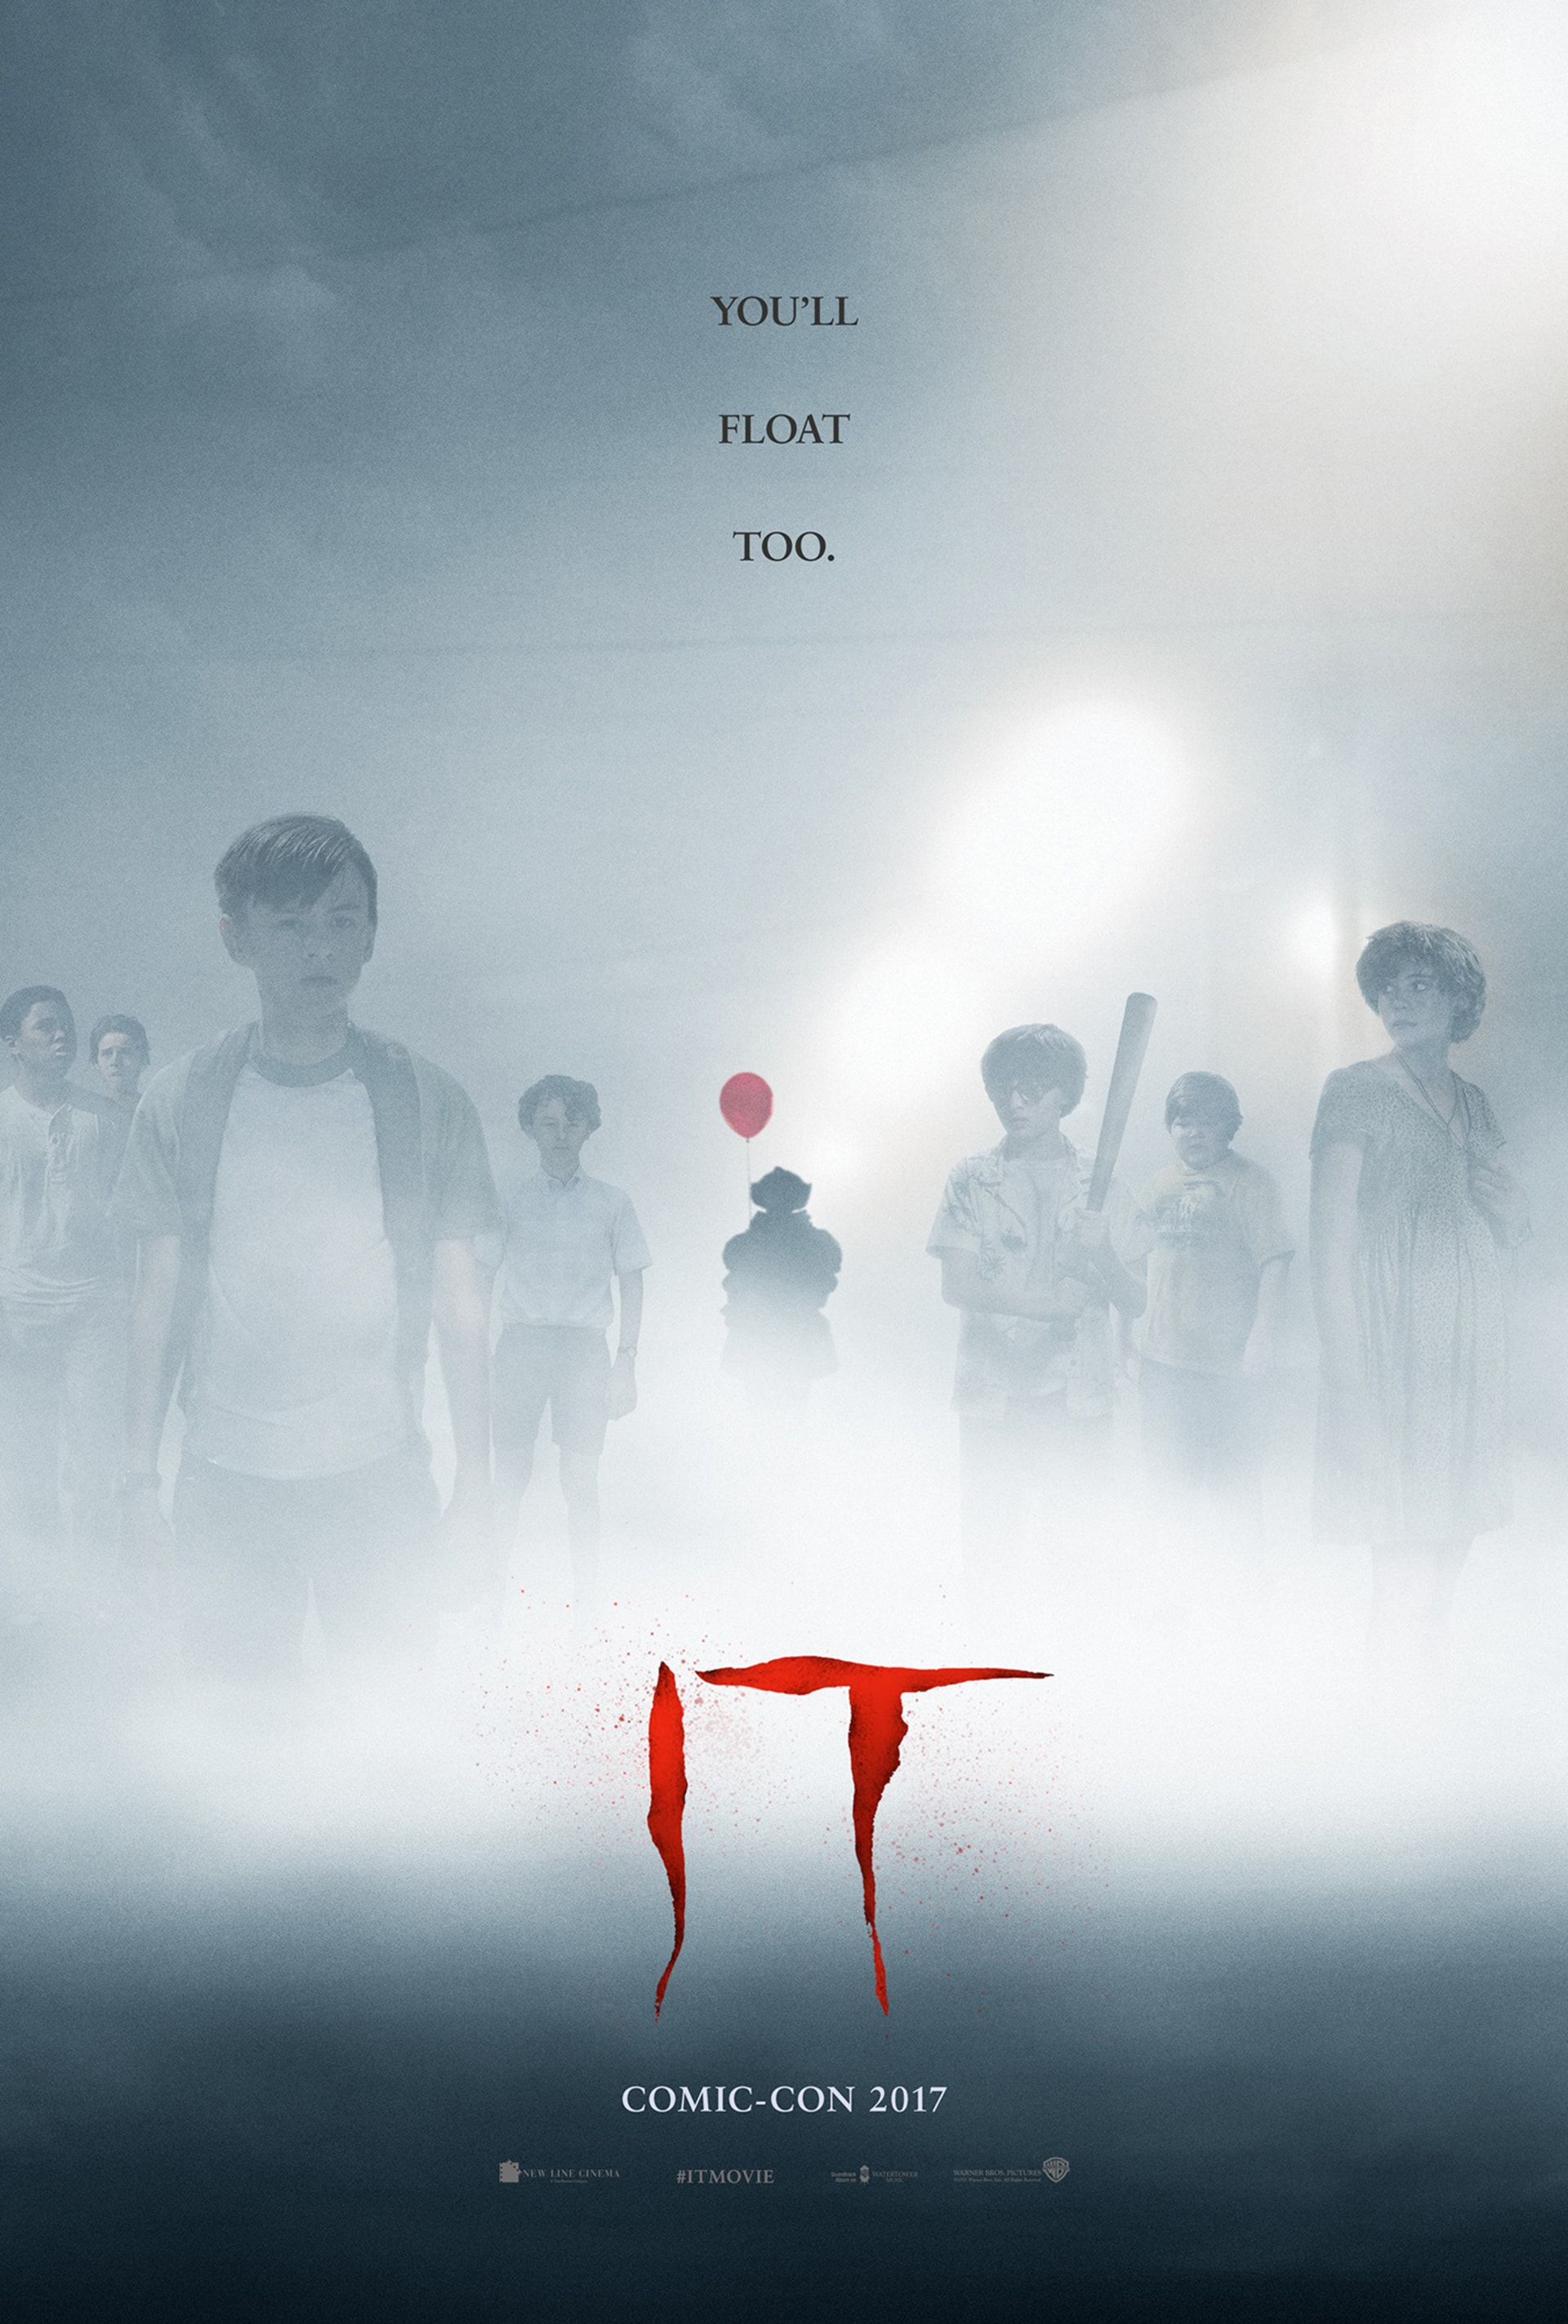 Group of kids standing in fog with Pennywise the clown in distance holding a red balloon